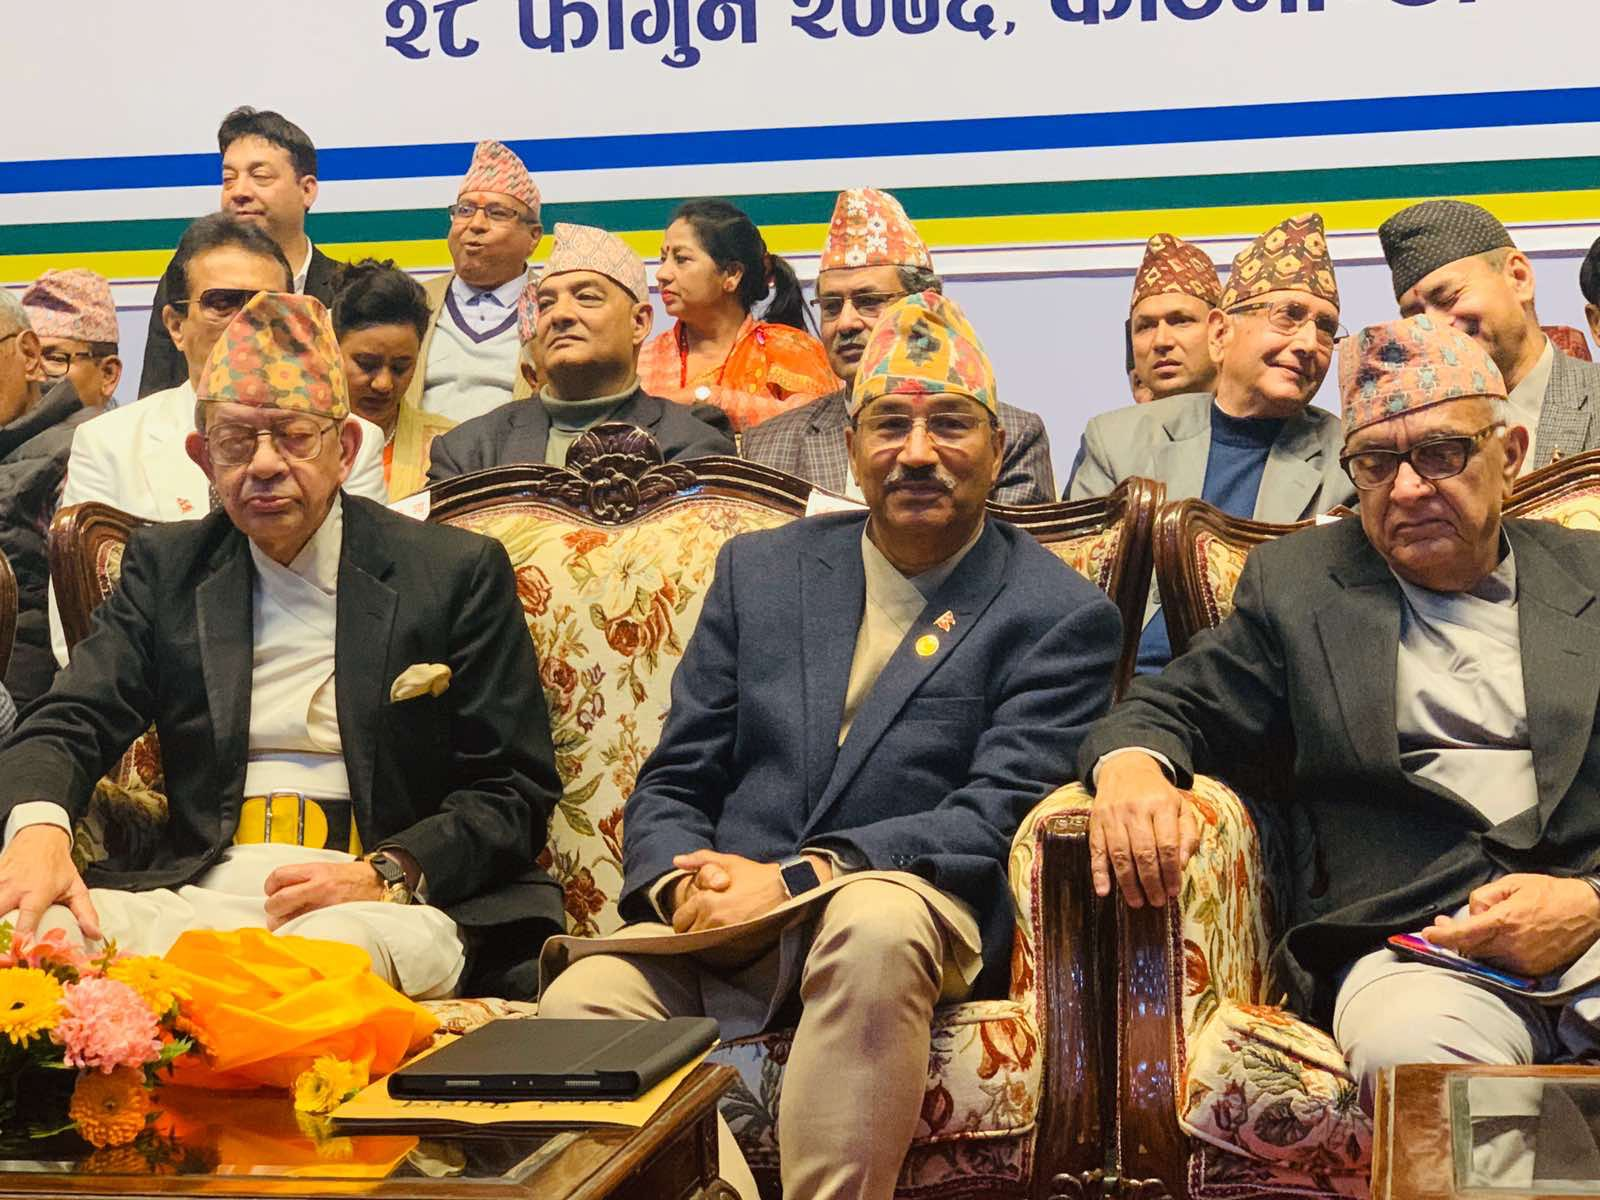 The three co-chairs of the newly united party, the RPP, as seen at the unification event held in Kathmandu today. Photo: Rajaram Bartaula/RPP